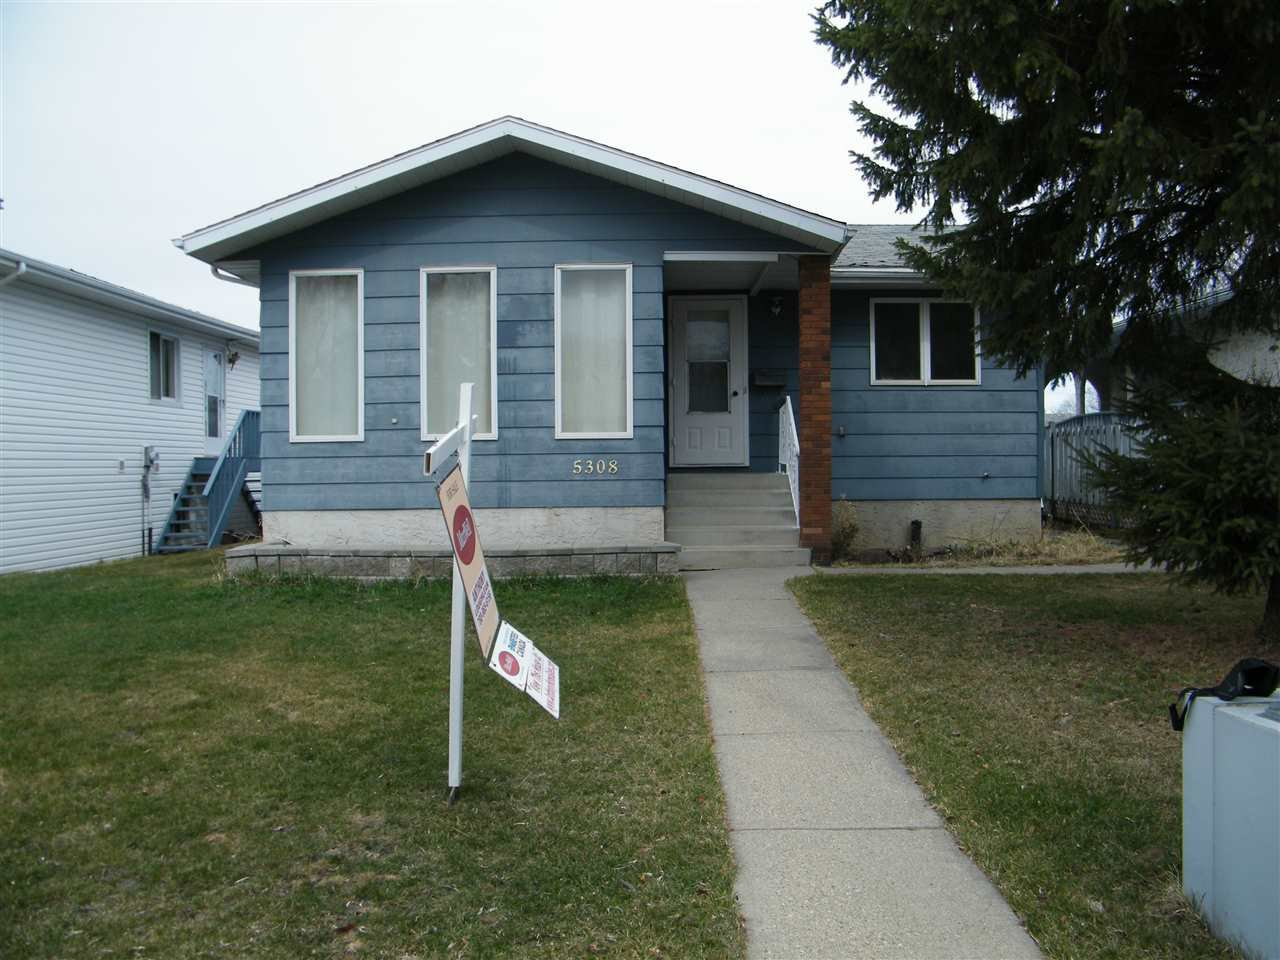 Main Photo: 5308 14 Avenue in Edmonton: Zone 29 House for sale : MLS®# E4152947